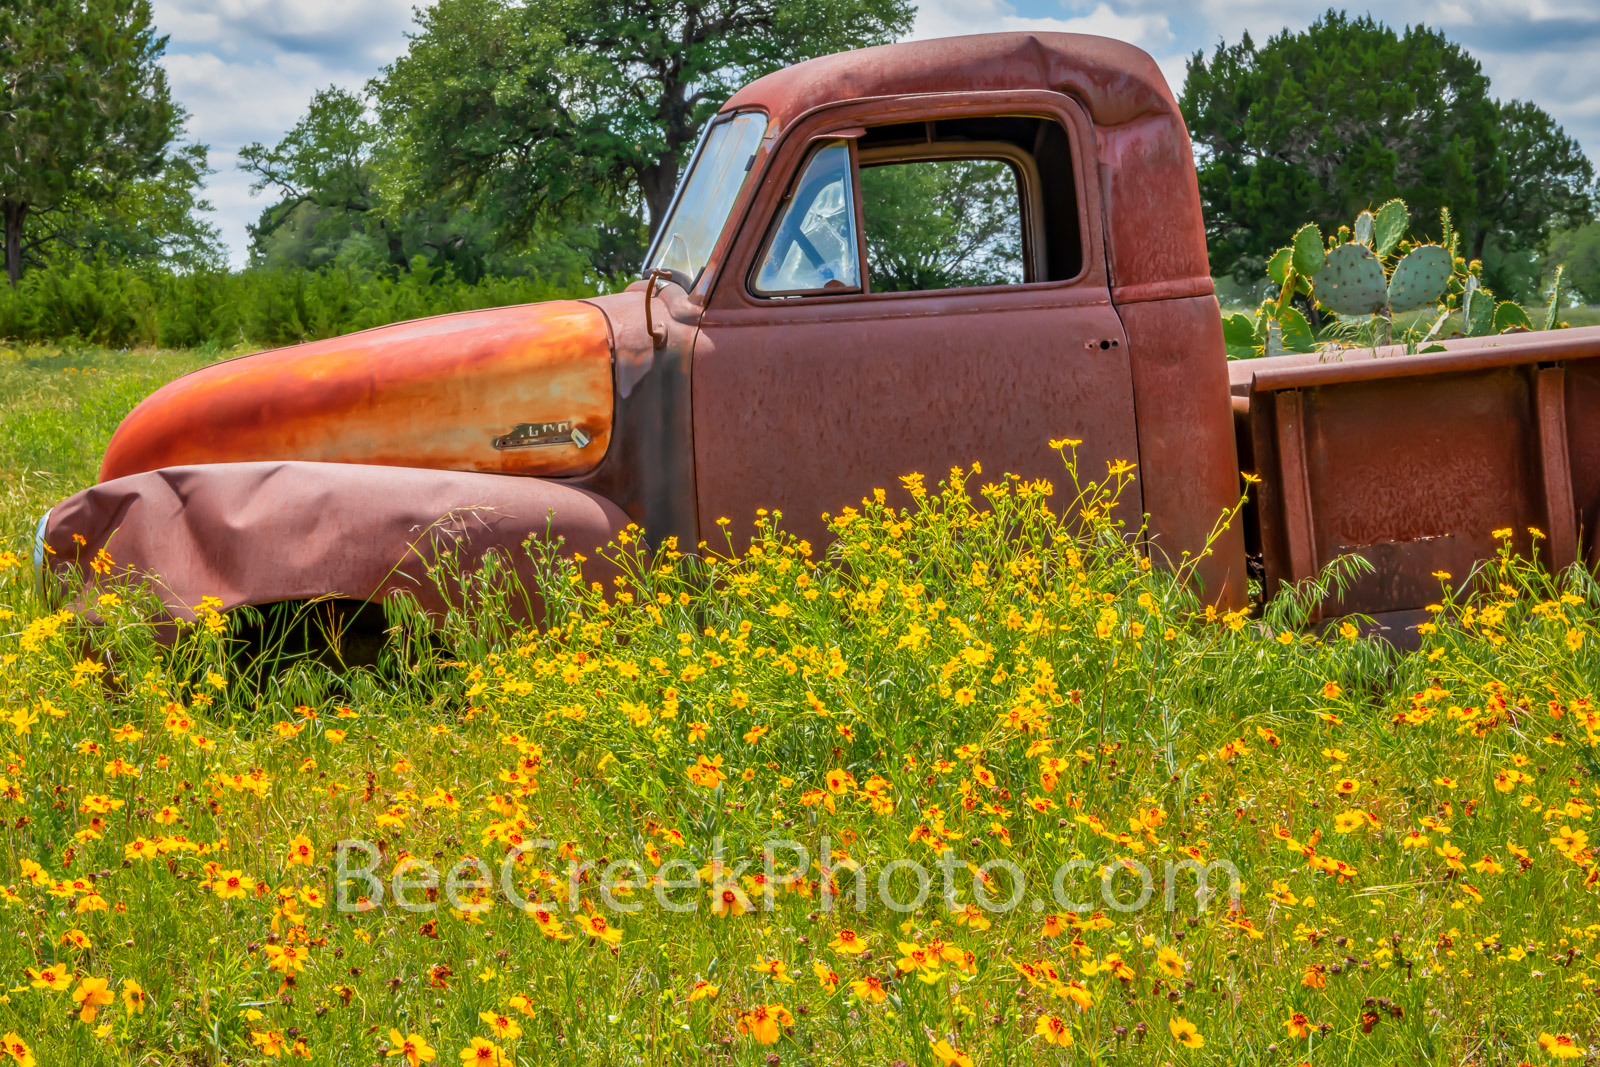 Old Truck and Wildflowers - Found this old truck out in the Texas hill country with yellow wildflowers surrounding the truck...